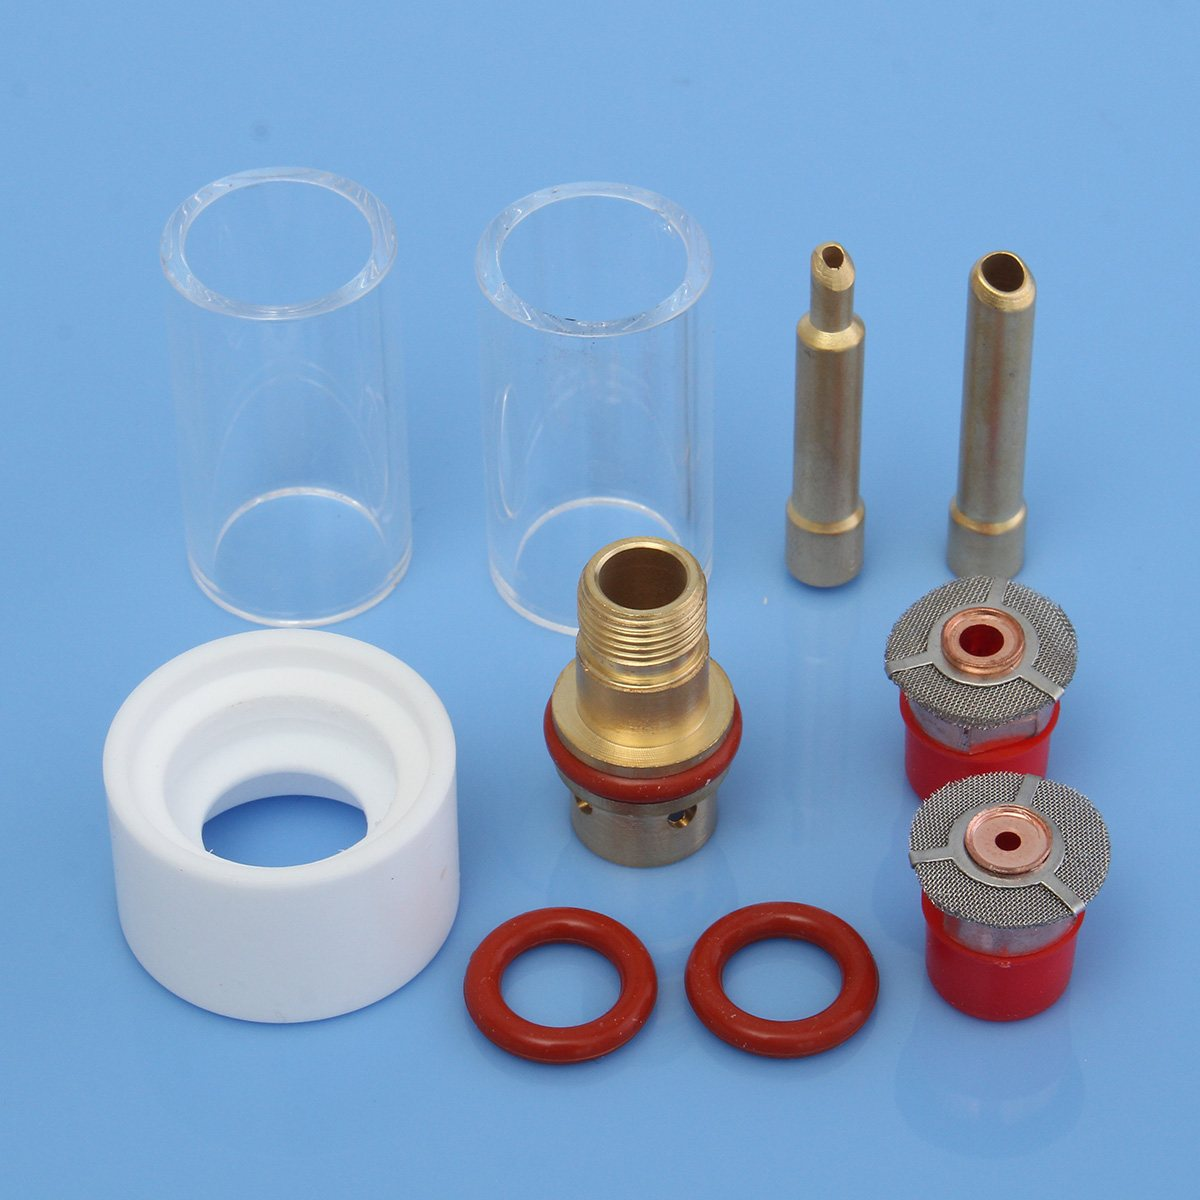 New 10Pcs 1.6mm 3.2mm TIG Welding Torch Collet Body Glass Pyrex Cup Gas Lens Insulator Kit Accessories for WP-17/18/26 Series